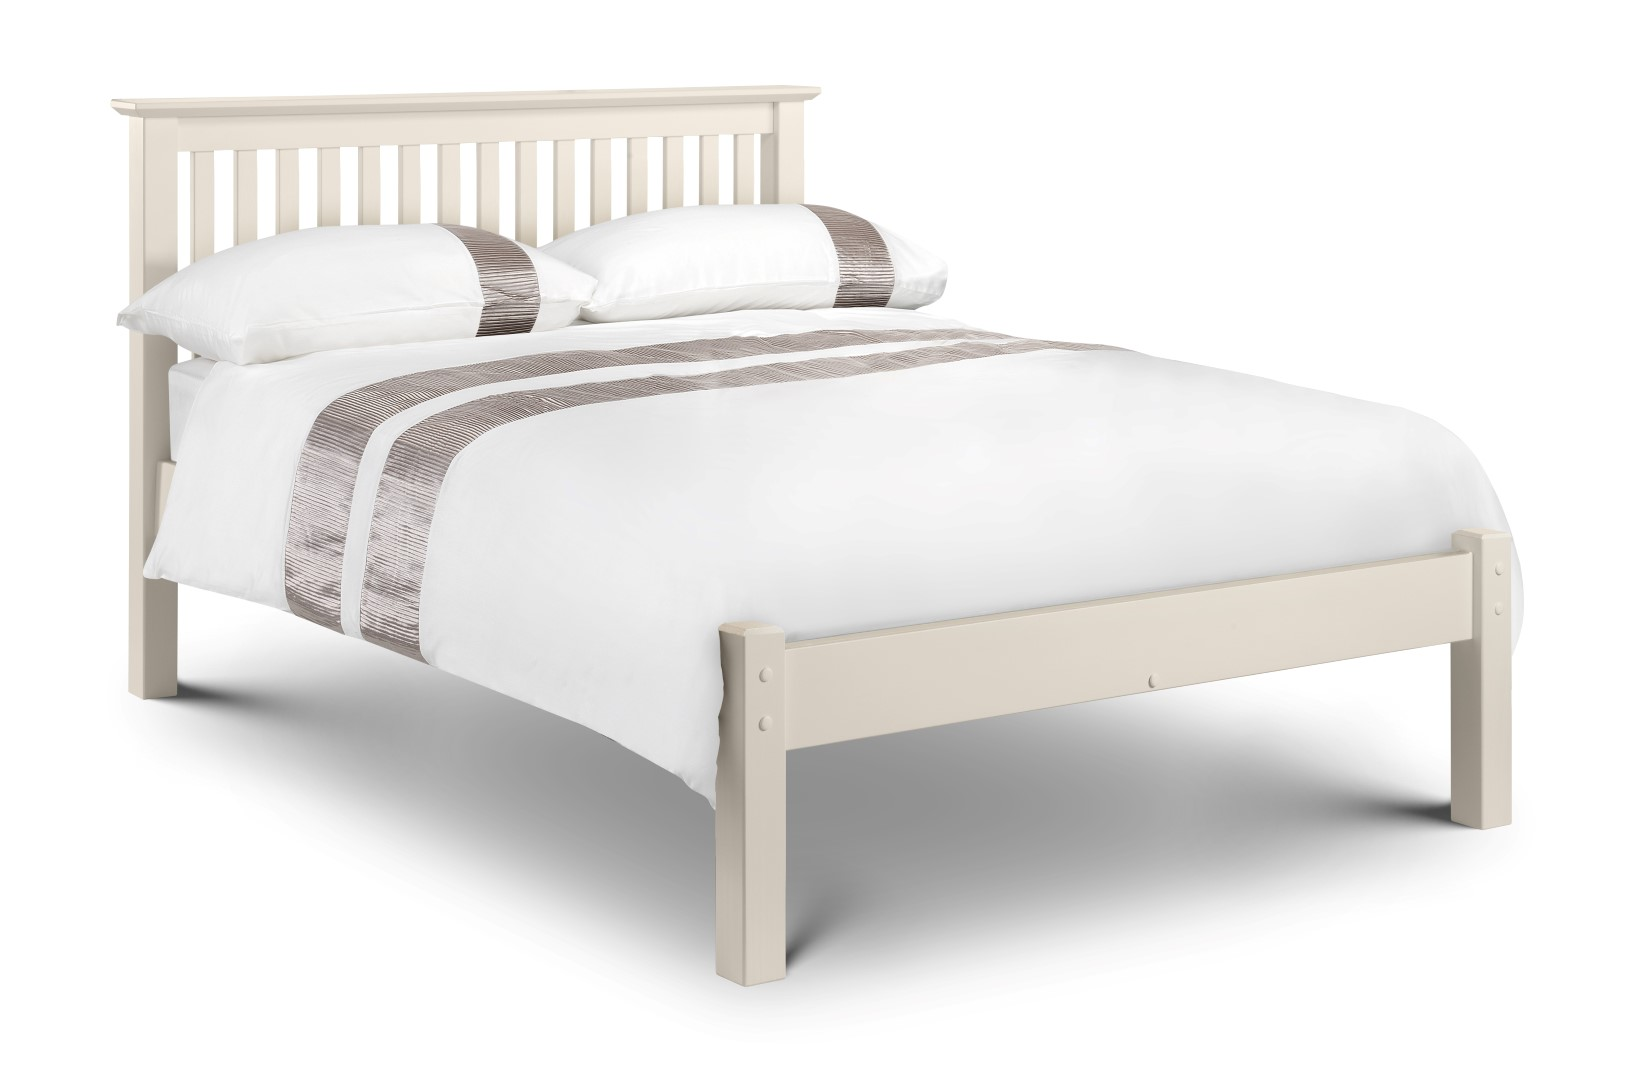 Barcelona Stone White Low Foot End Solid Pine Double Bed